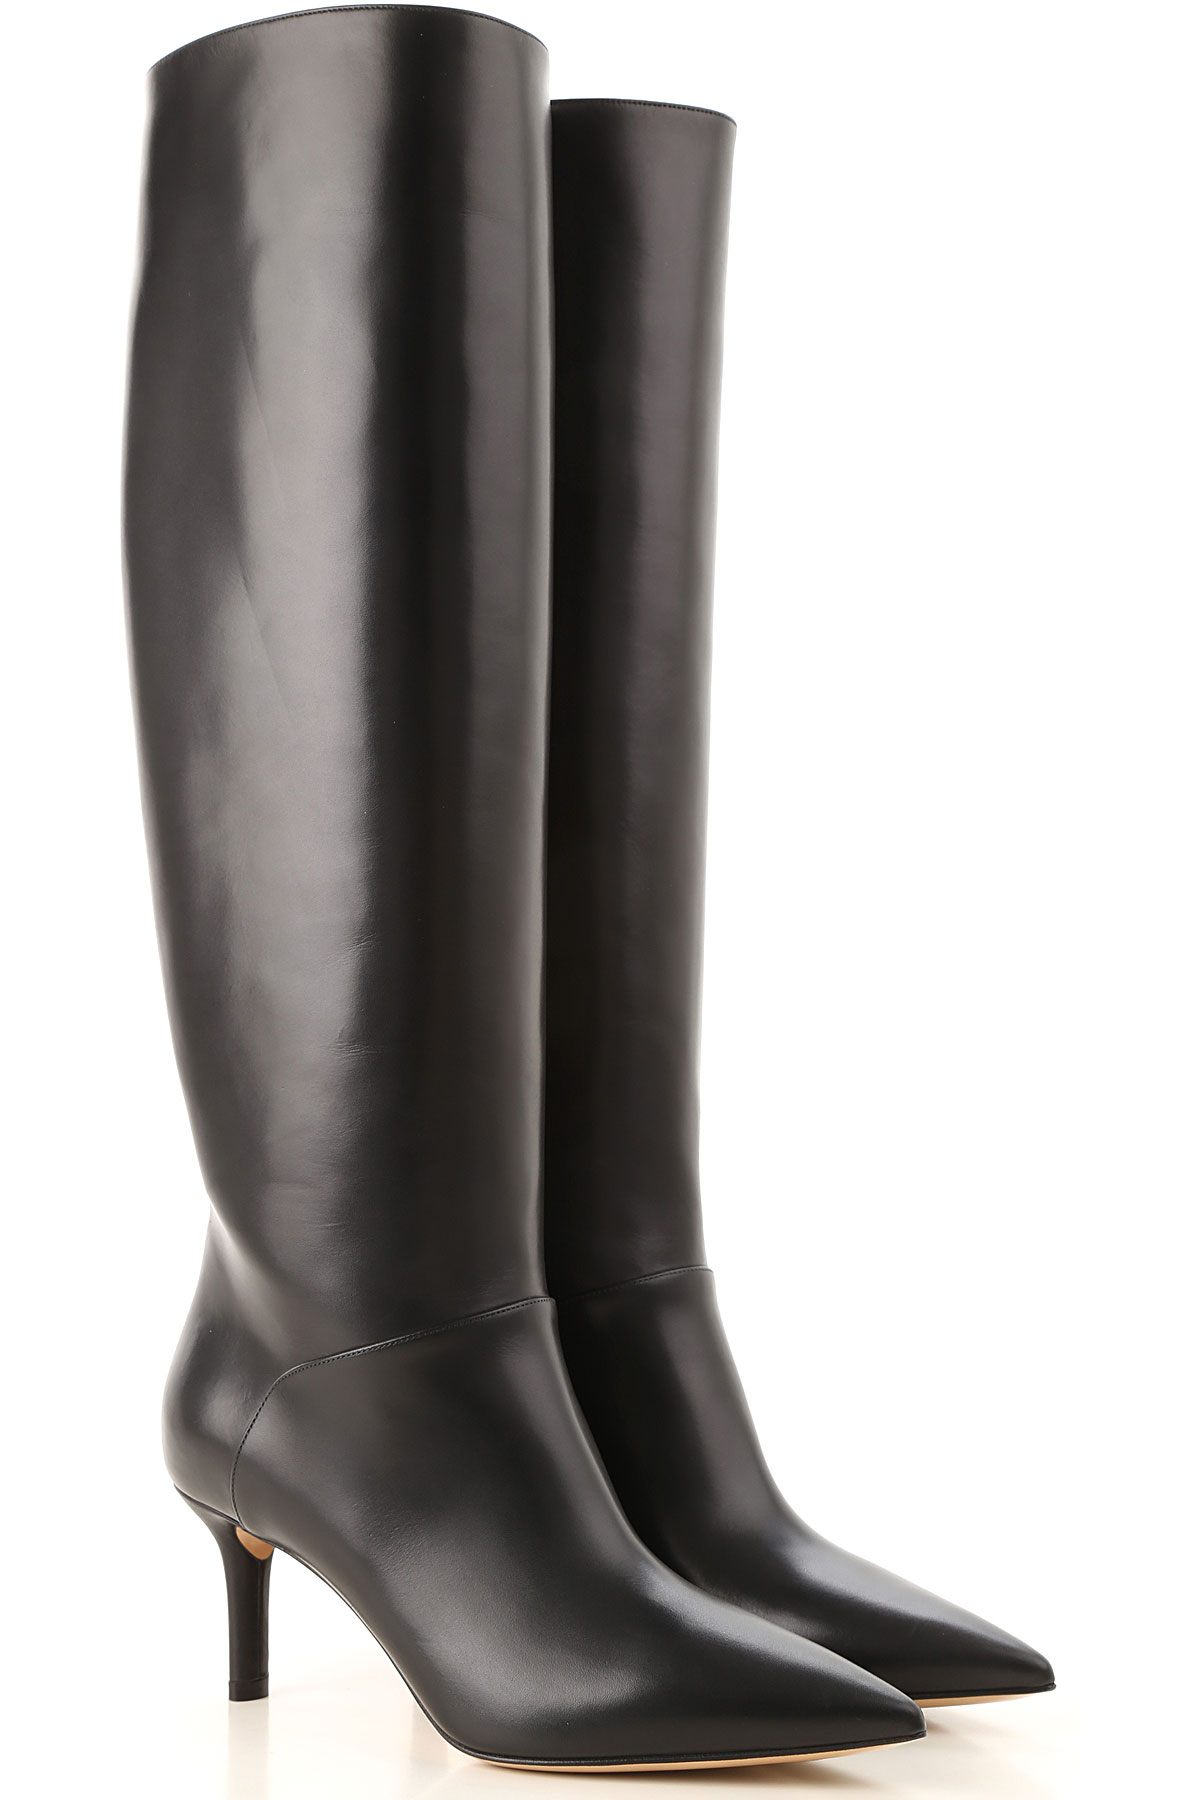 Image of Casadei Boots for Women, Booties, Black, Leather, 2017, 10 6 7 8 9